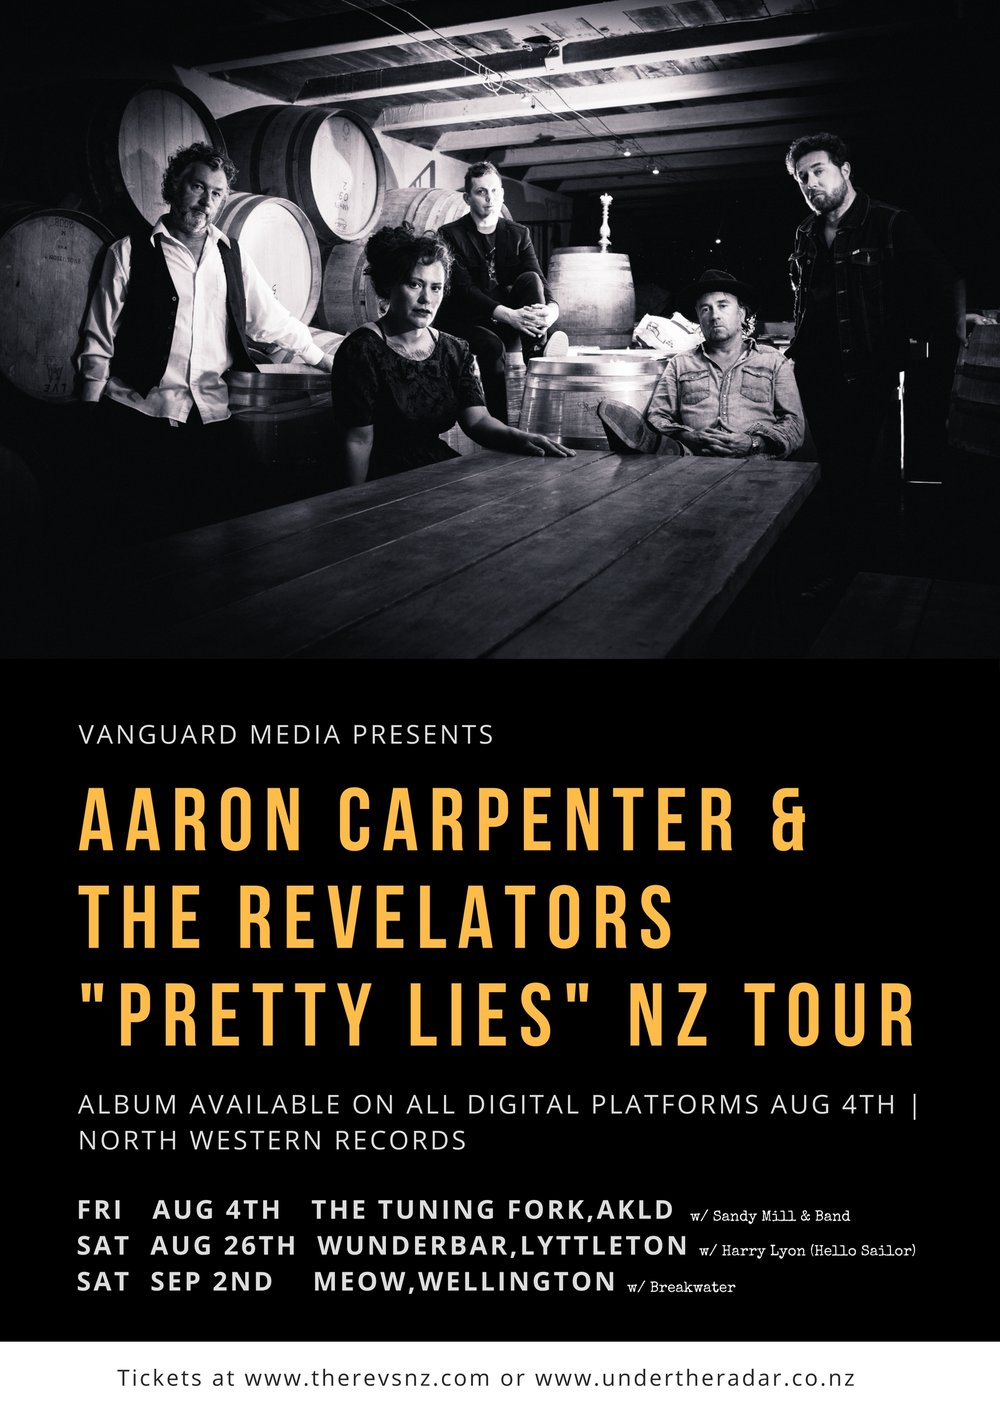 - Aaron Carpenter & The Revelators delve into their new-found swamp sound with their grinding and gritty debut album, 'Pretty Lies'. Recorded in a barn on Waiheke Island with producer Nick Abbot (The Subways, Robert Plant, The Datsuns), the tracks conjurer up a raw rock incarnation of their deep-seated country and blues sound. Since their formation, Aaron Carpenter & The Revelators have become an integral part of New Zealand's steadily growing Americana scene and has seen the band perform at Spark Arena's Southern Fork Americana Festival alongside names such as Robert Ellis, Hayes Carll and Blind Boy Paxton.  The nationwide tour see The Revelators in Auckland, Wellington & Lyttleton on this jaunt.